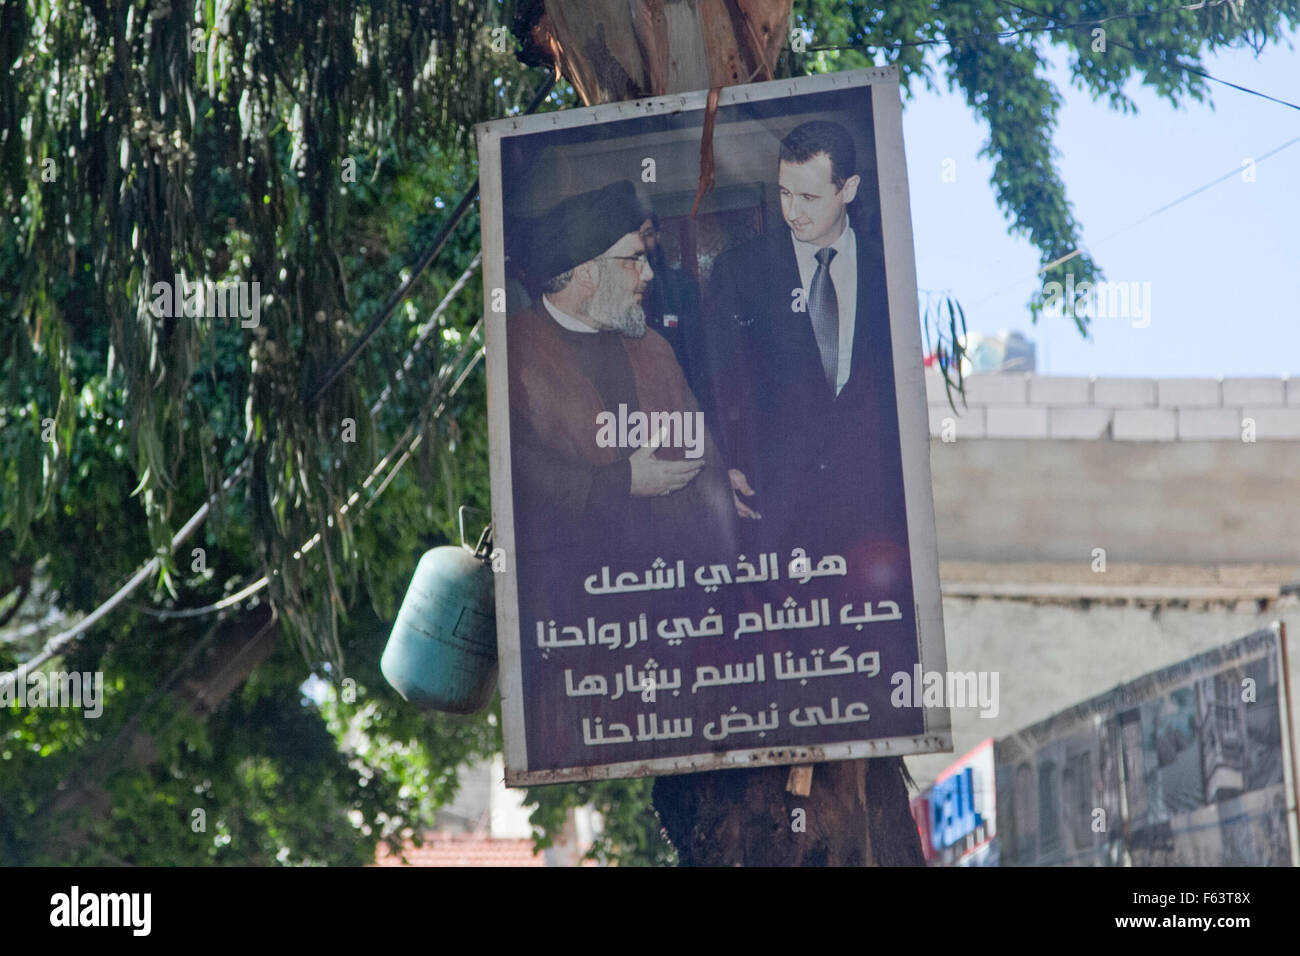 Beirut Lebanon, 11th November 2015. A poster showing President Assad of Syria (R) together with the Lebanese spiritual - Stock Image